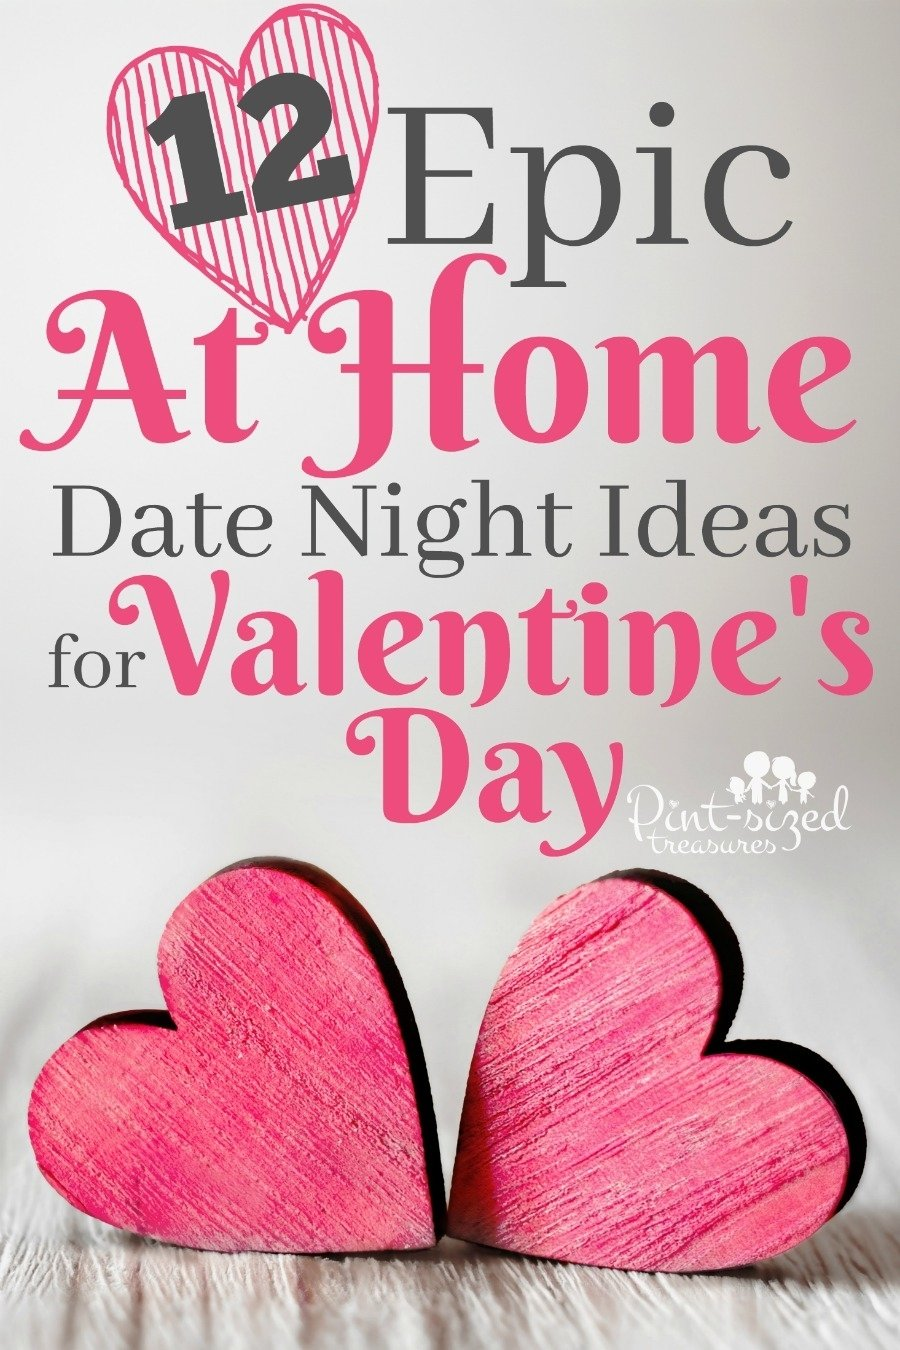 12 epic at home date night ideas for valentine's day · pint-sized